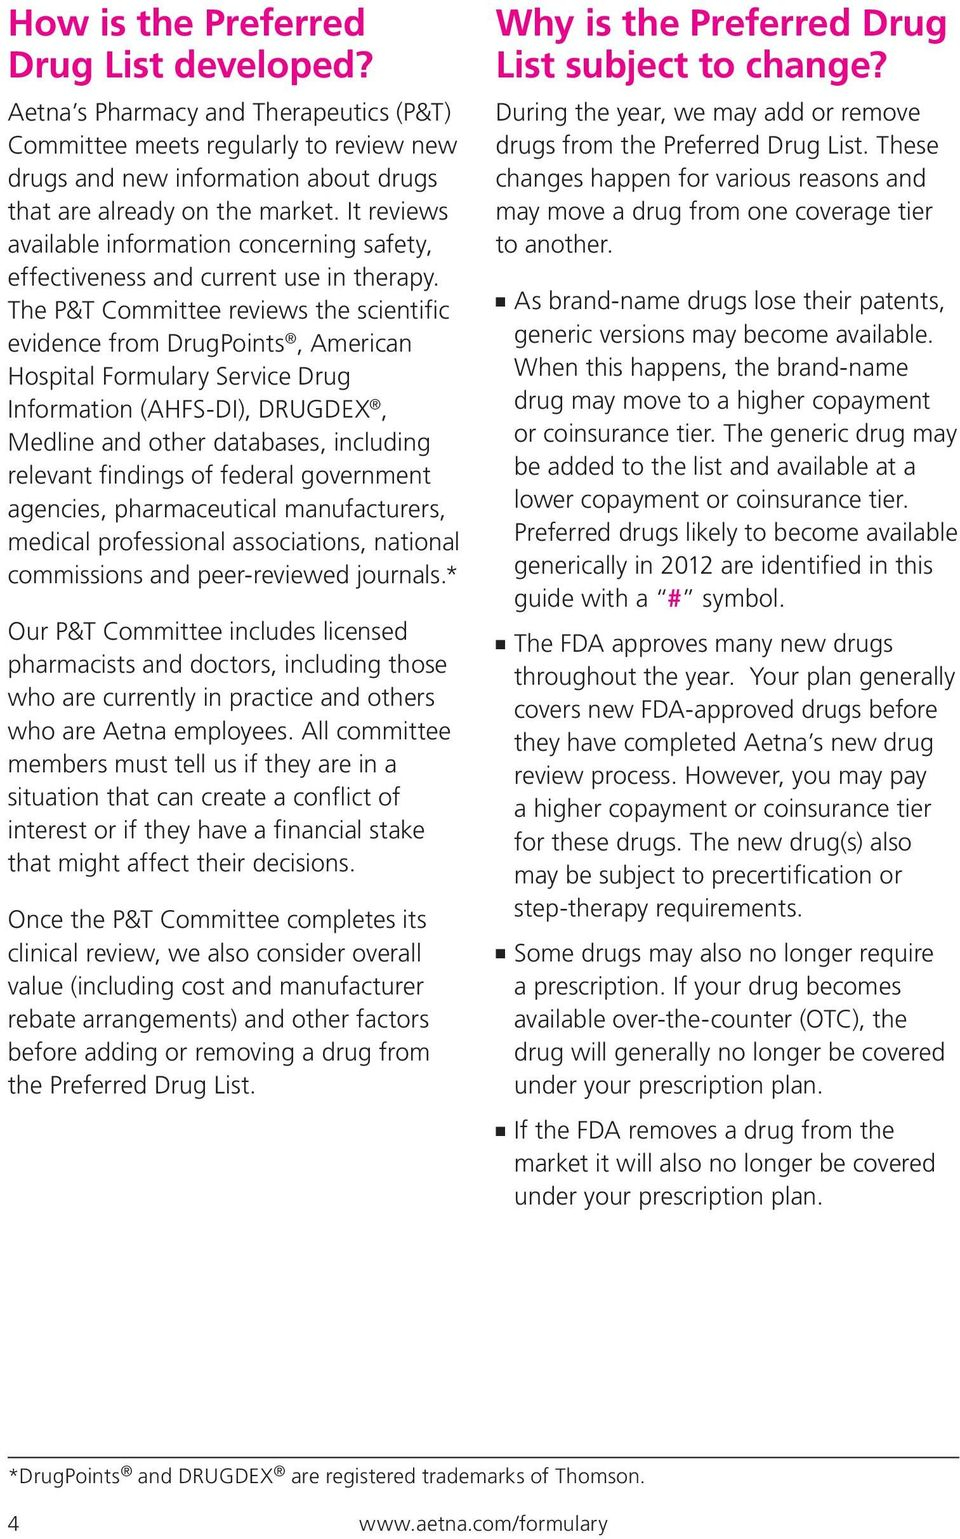 The P&T Committee reviews the scientific evidence from DrugPoints, American Hospital Formulary Service Drug Information (AHFS-DI), DRUGDEX, Medline and other databases, including relevant findings of